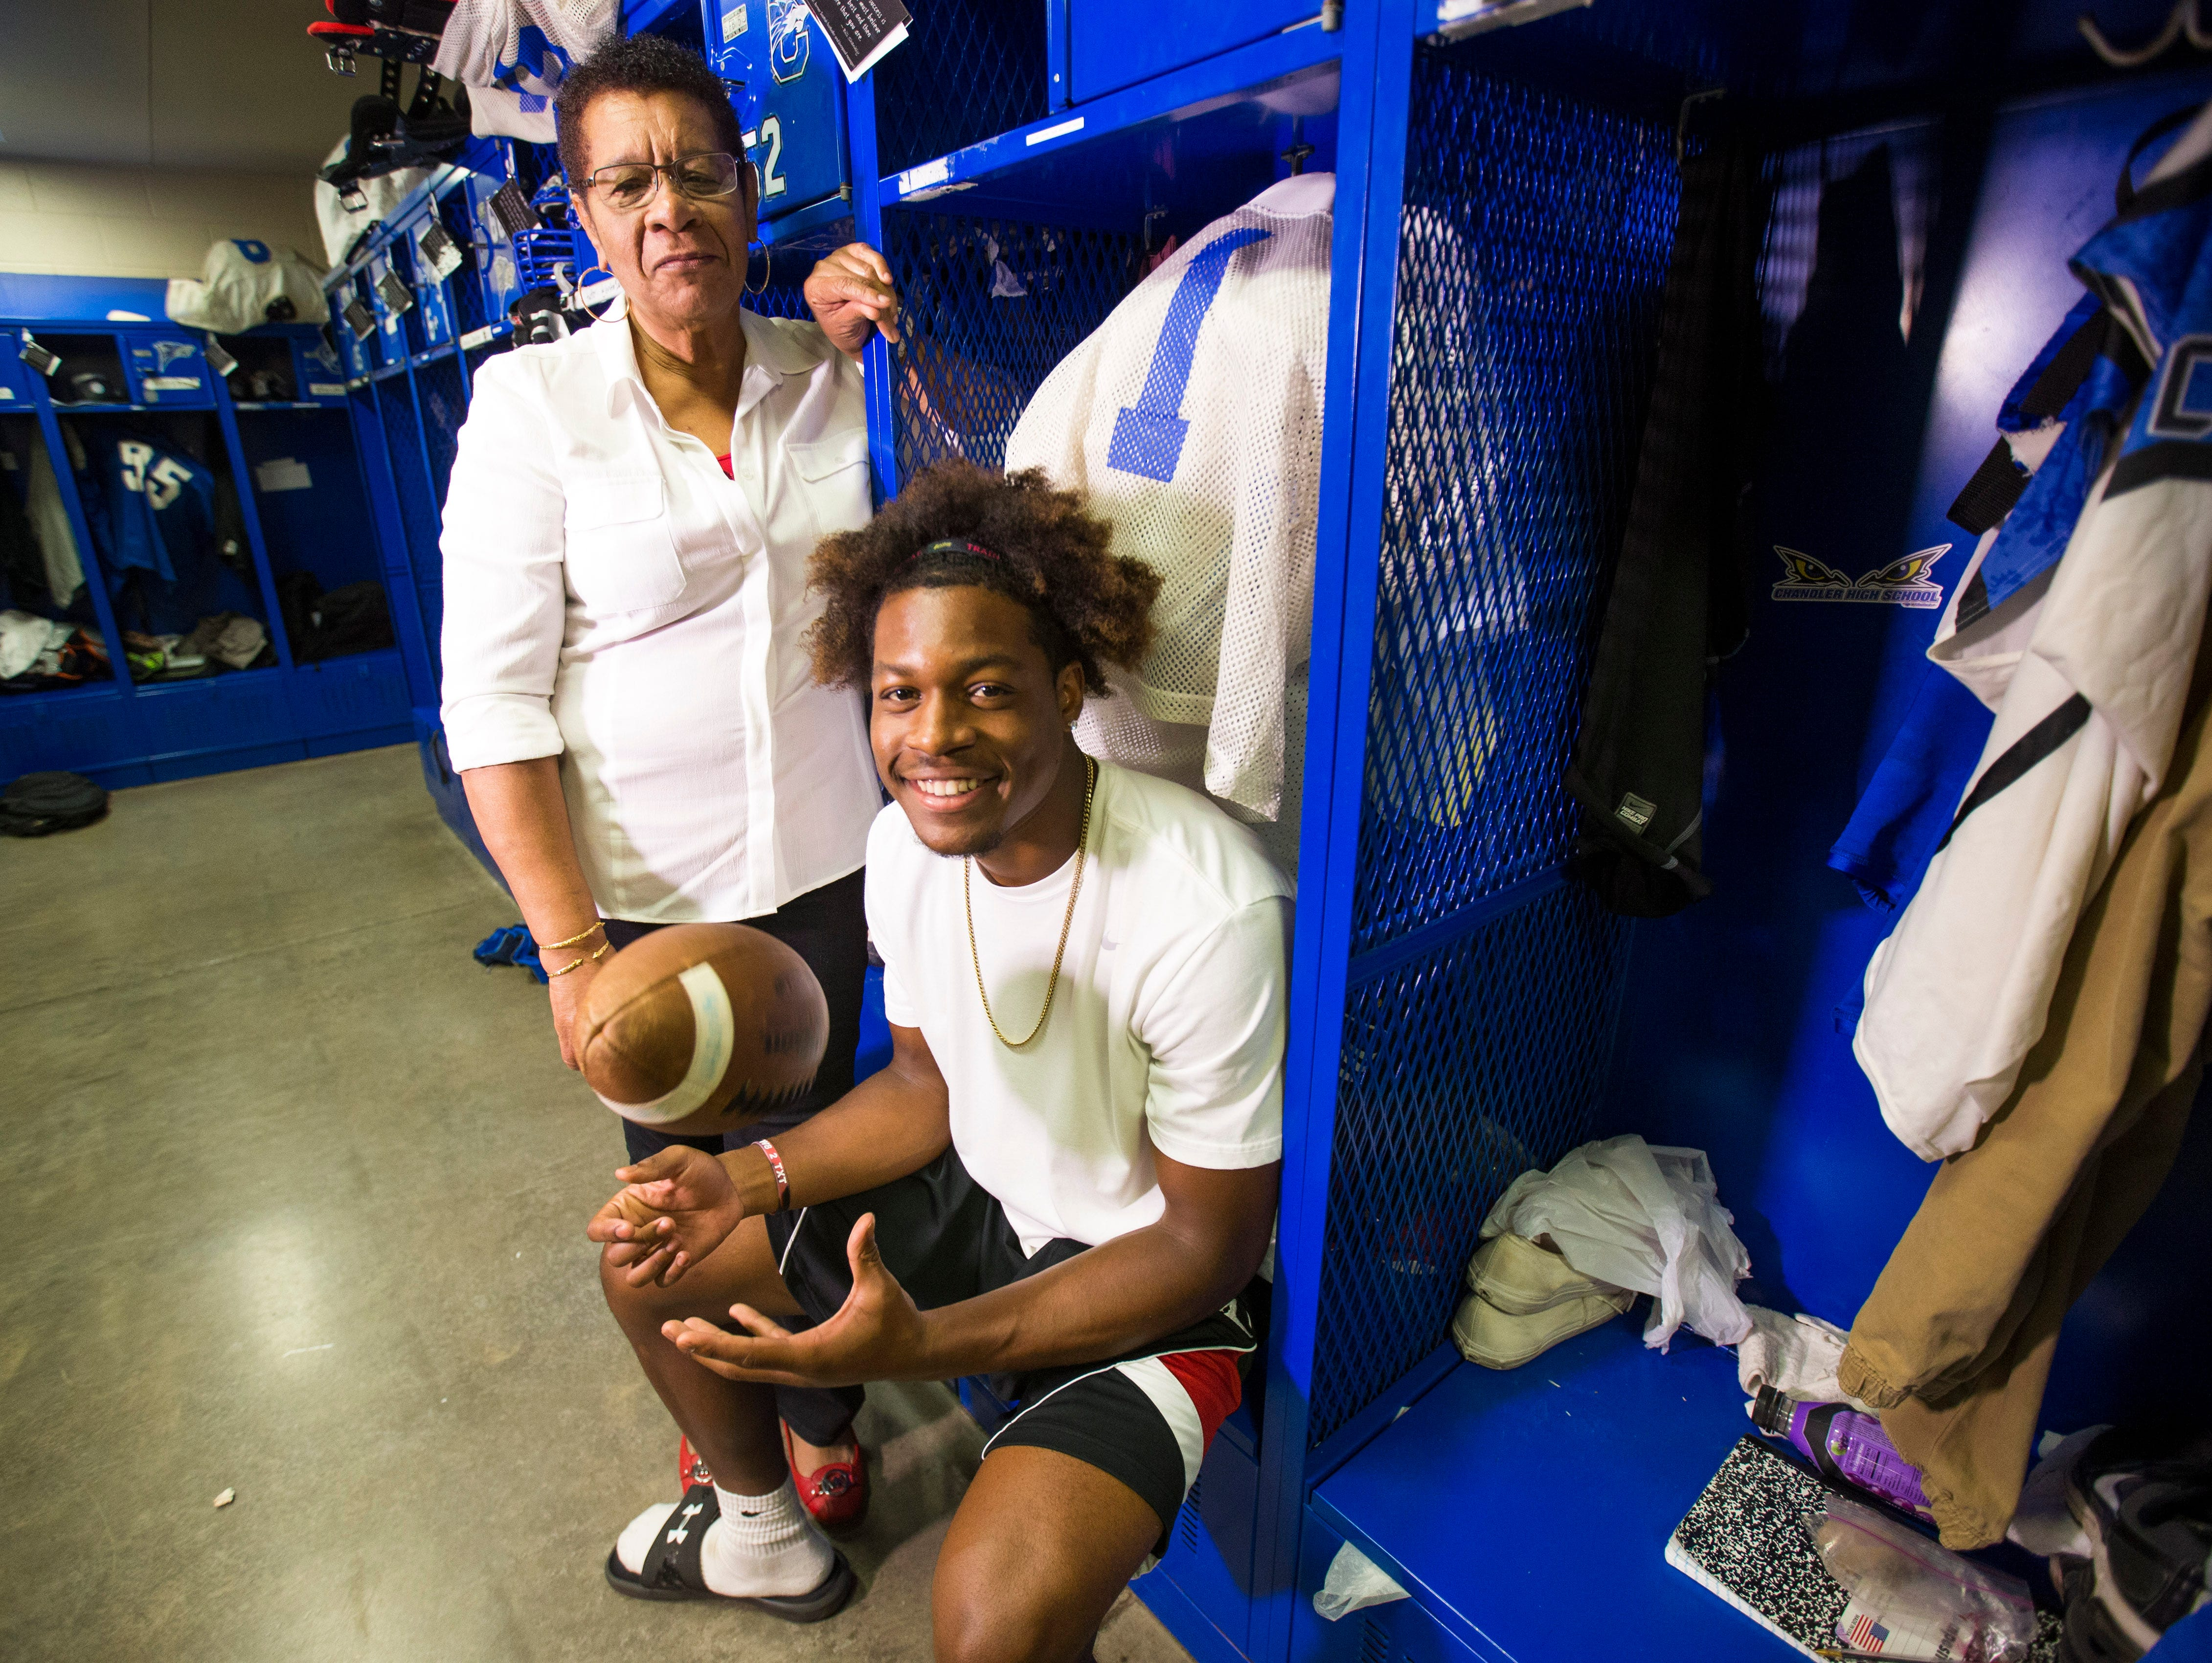 Chandler High's N'Keal Harry poses with his grandmother, Felna, in the football locker room August 25, 2015. Felna brough her grandson over from St. Vincent & the Grenadines for a better life.